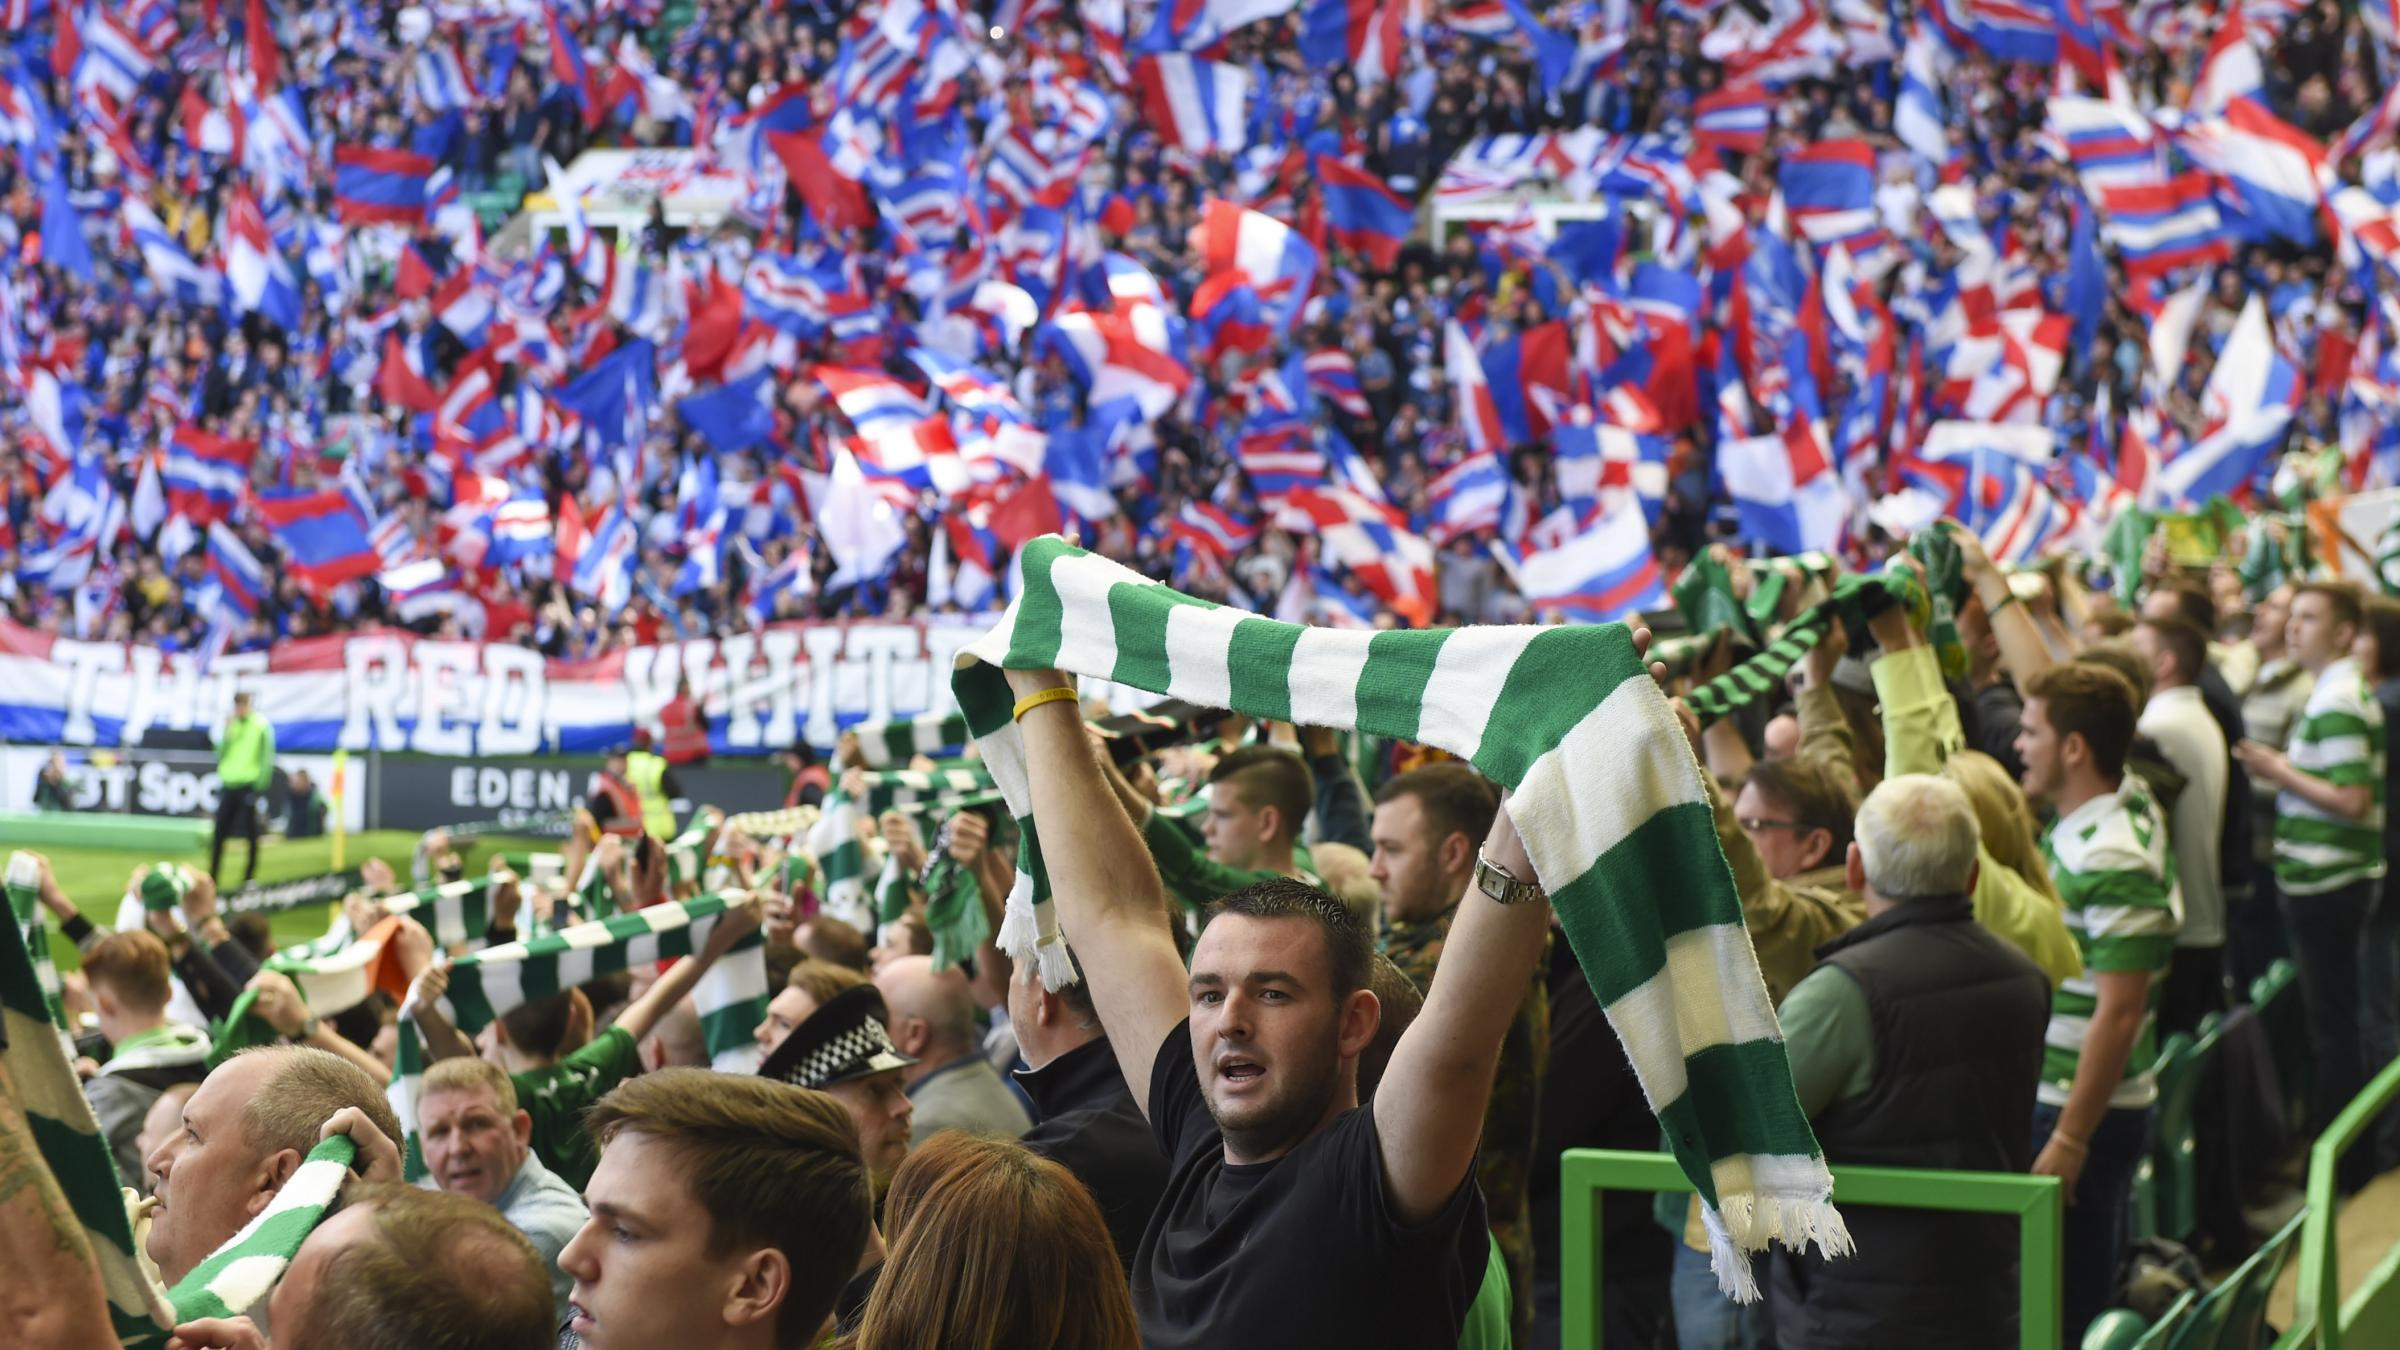 Bragging rights: Davie Hay expects that it will be the Celtic fans who will have the happier New Year after the Hogmanay clash with Rangers.